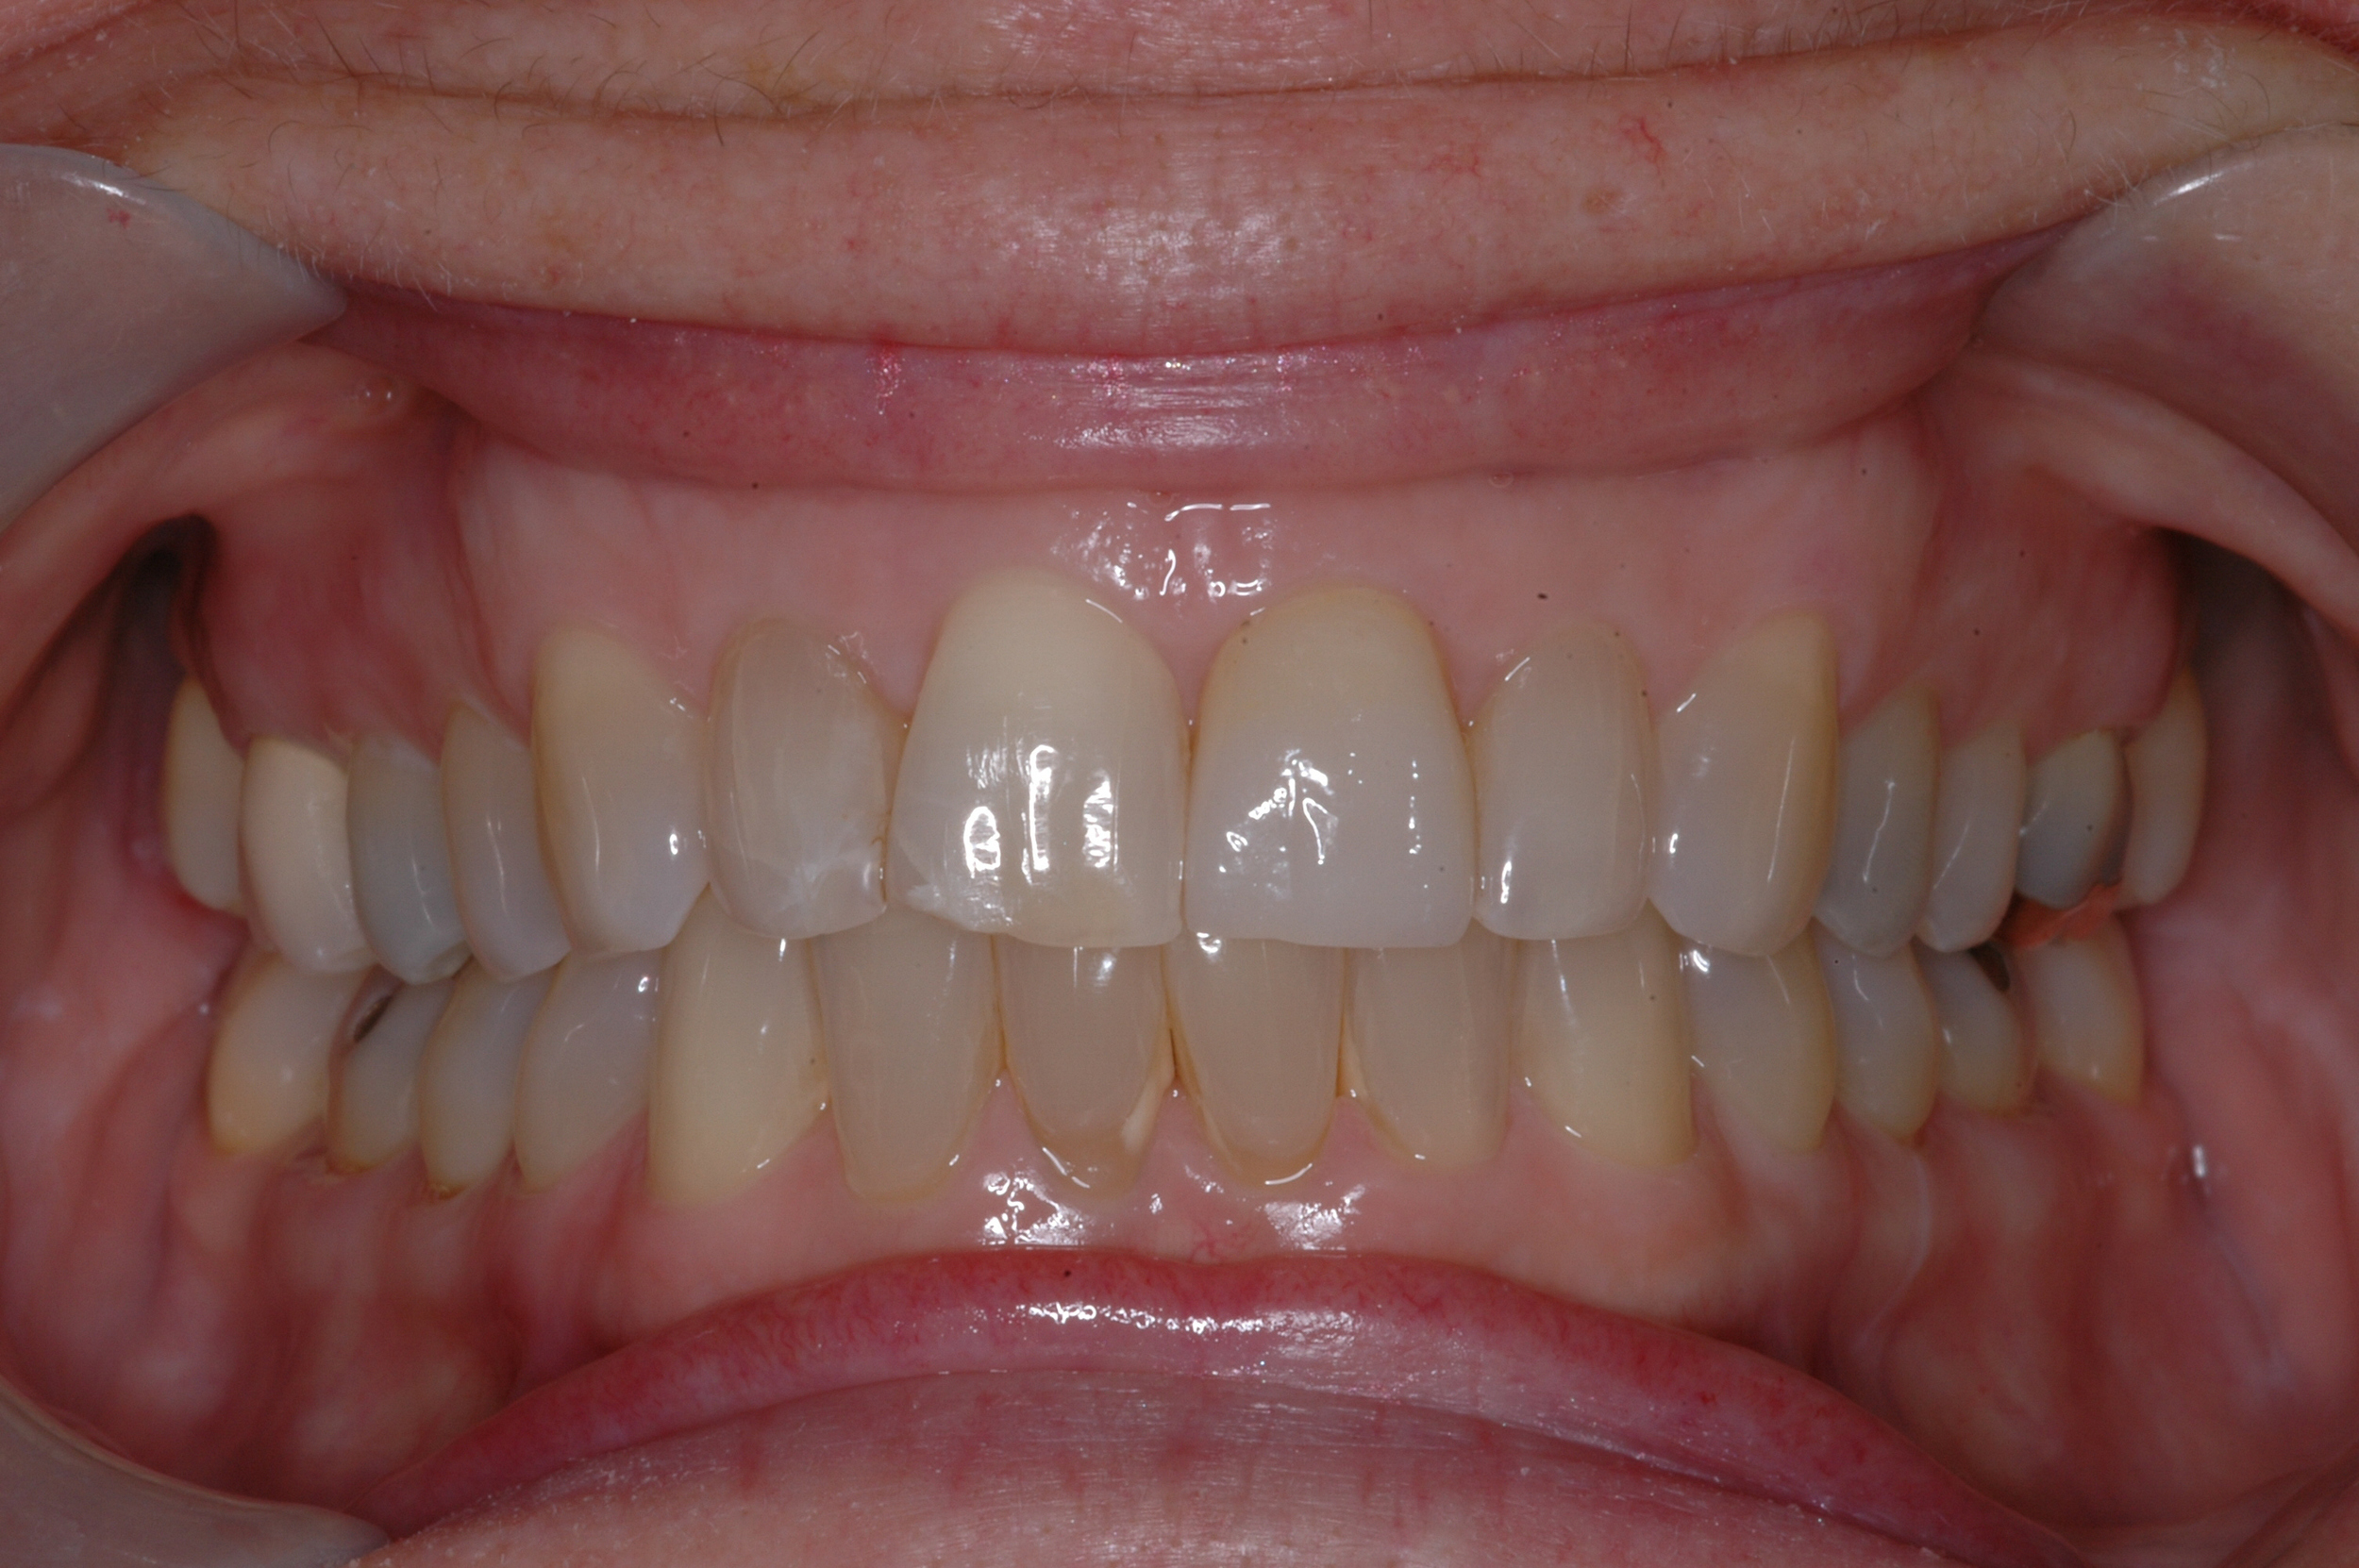 This is the final crown. Natural looking restorations that blendwith natural teethare attainable.